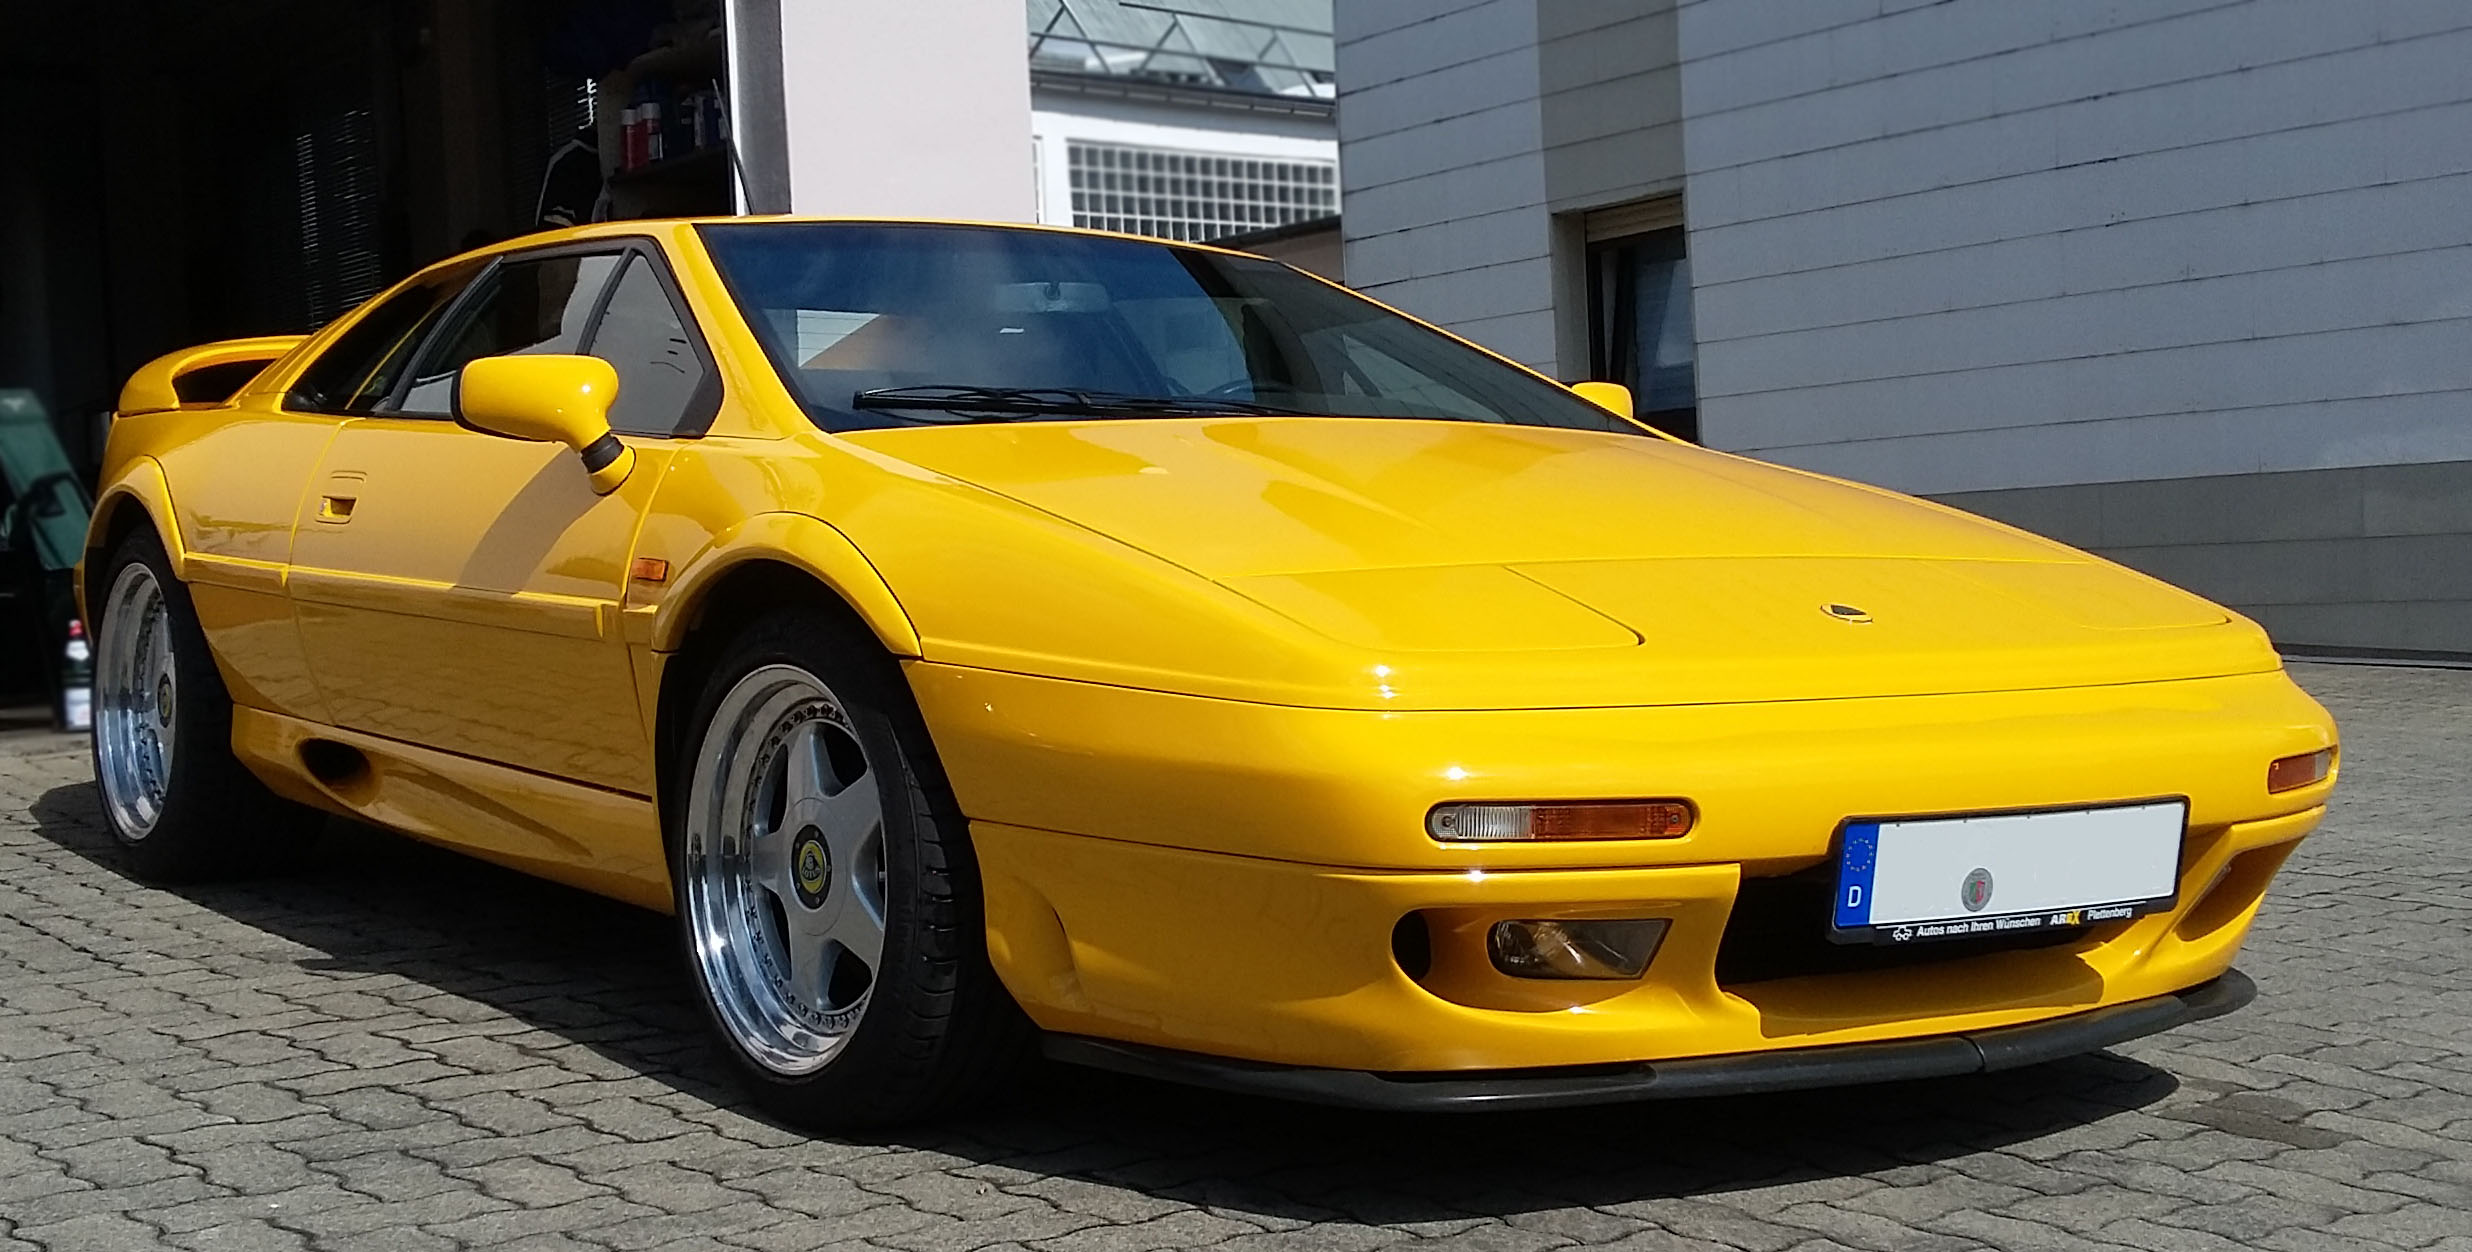 Lotus Esprit S4s vorne links